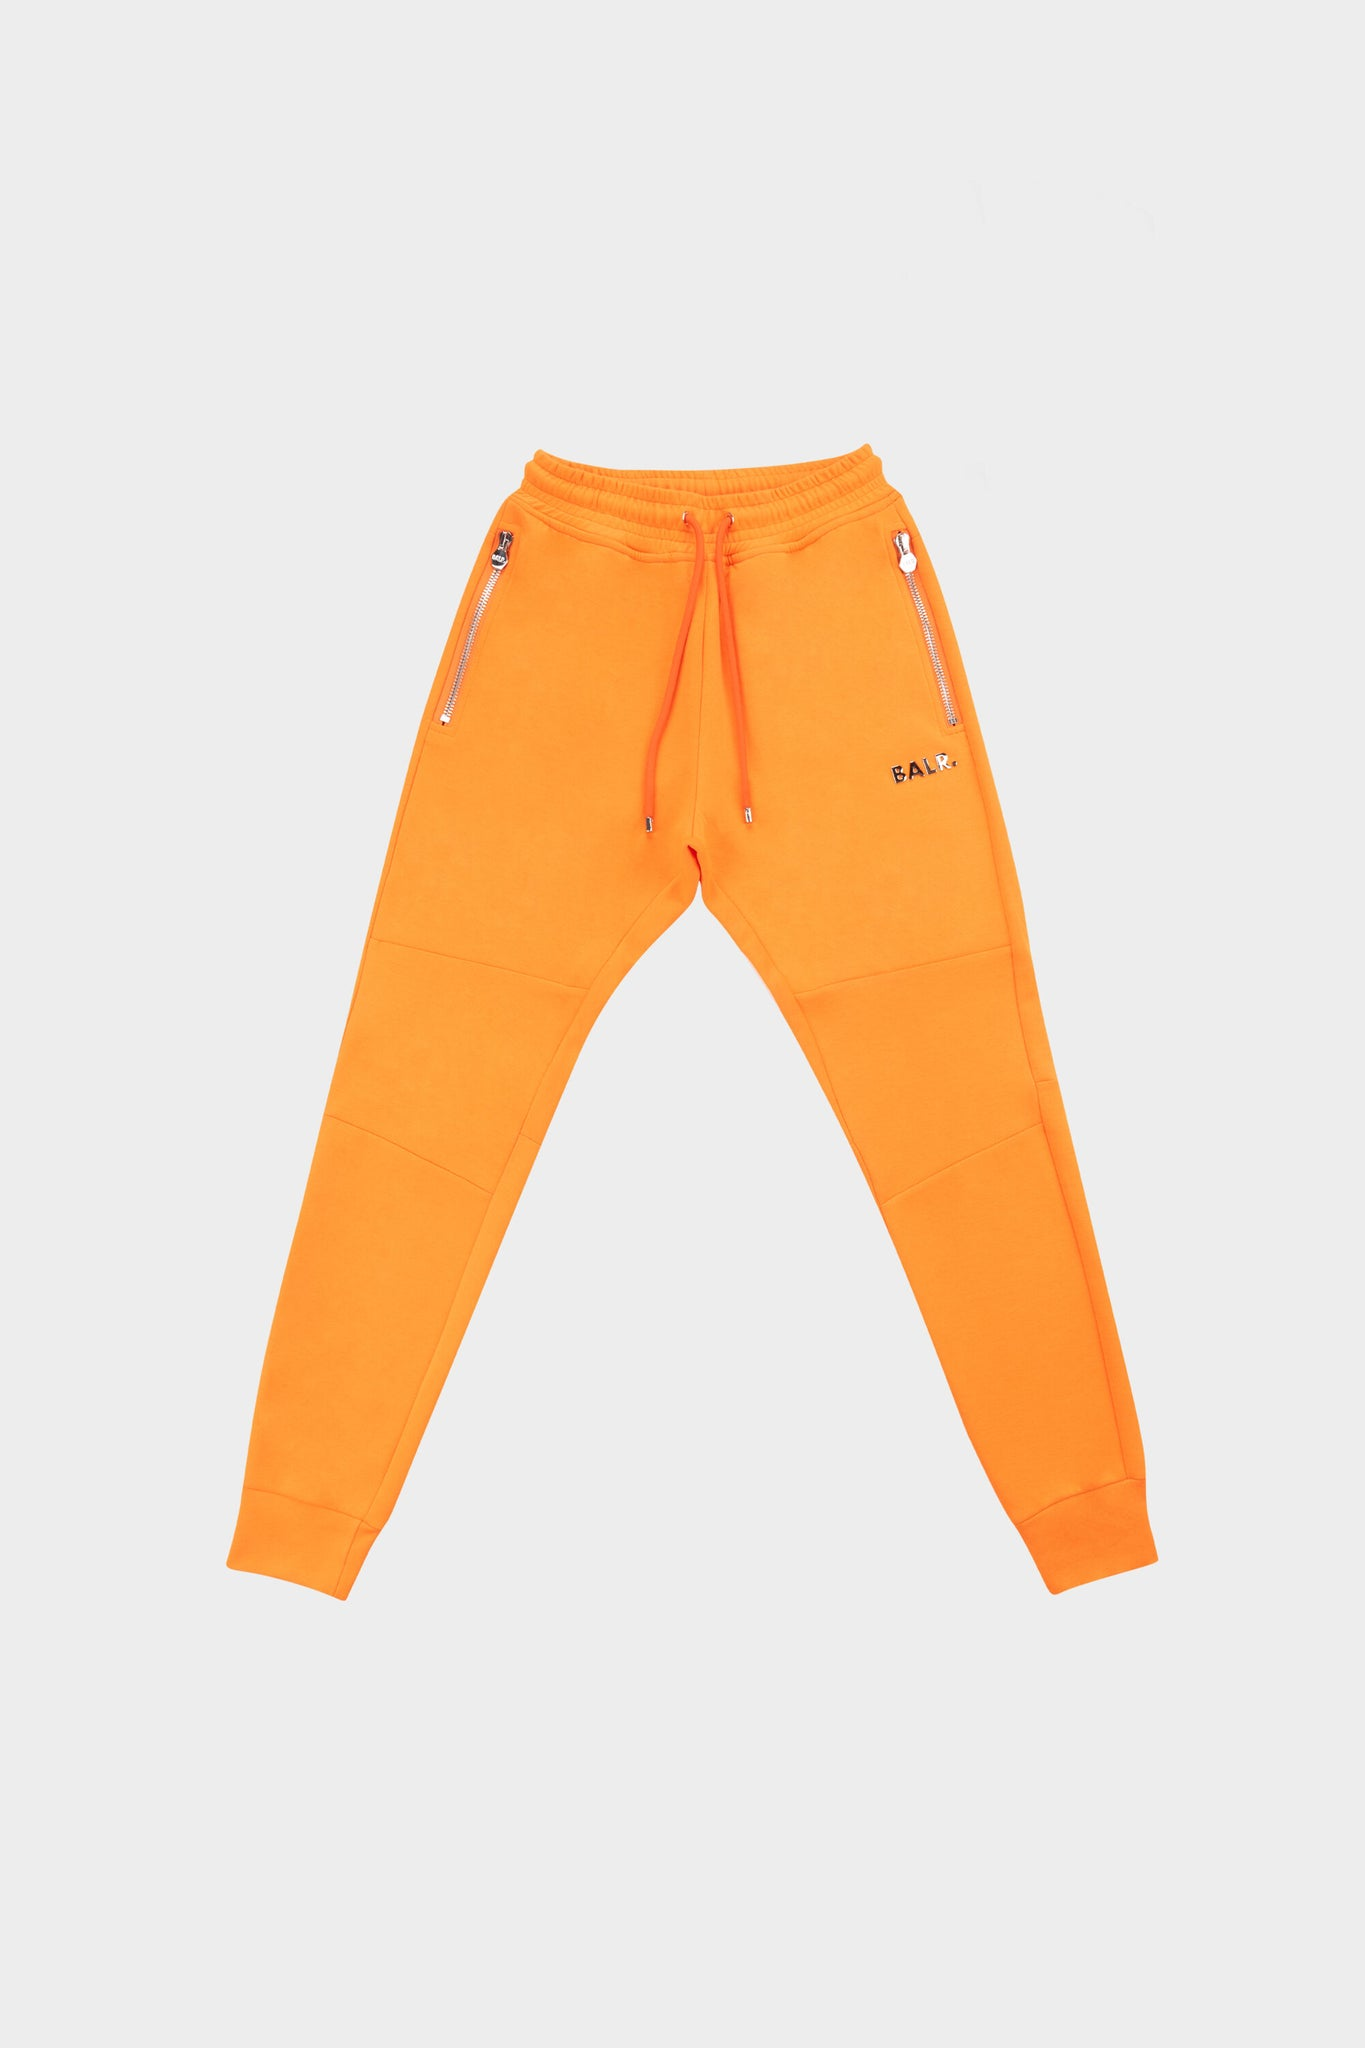 Q-Series Classic Sweatpants Vibrant Orange